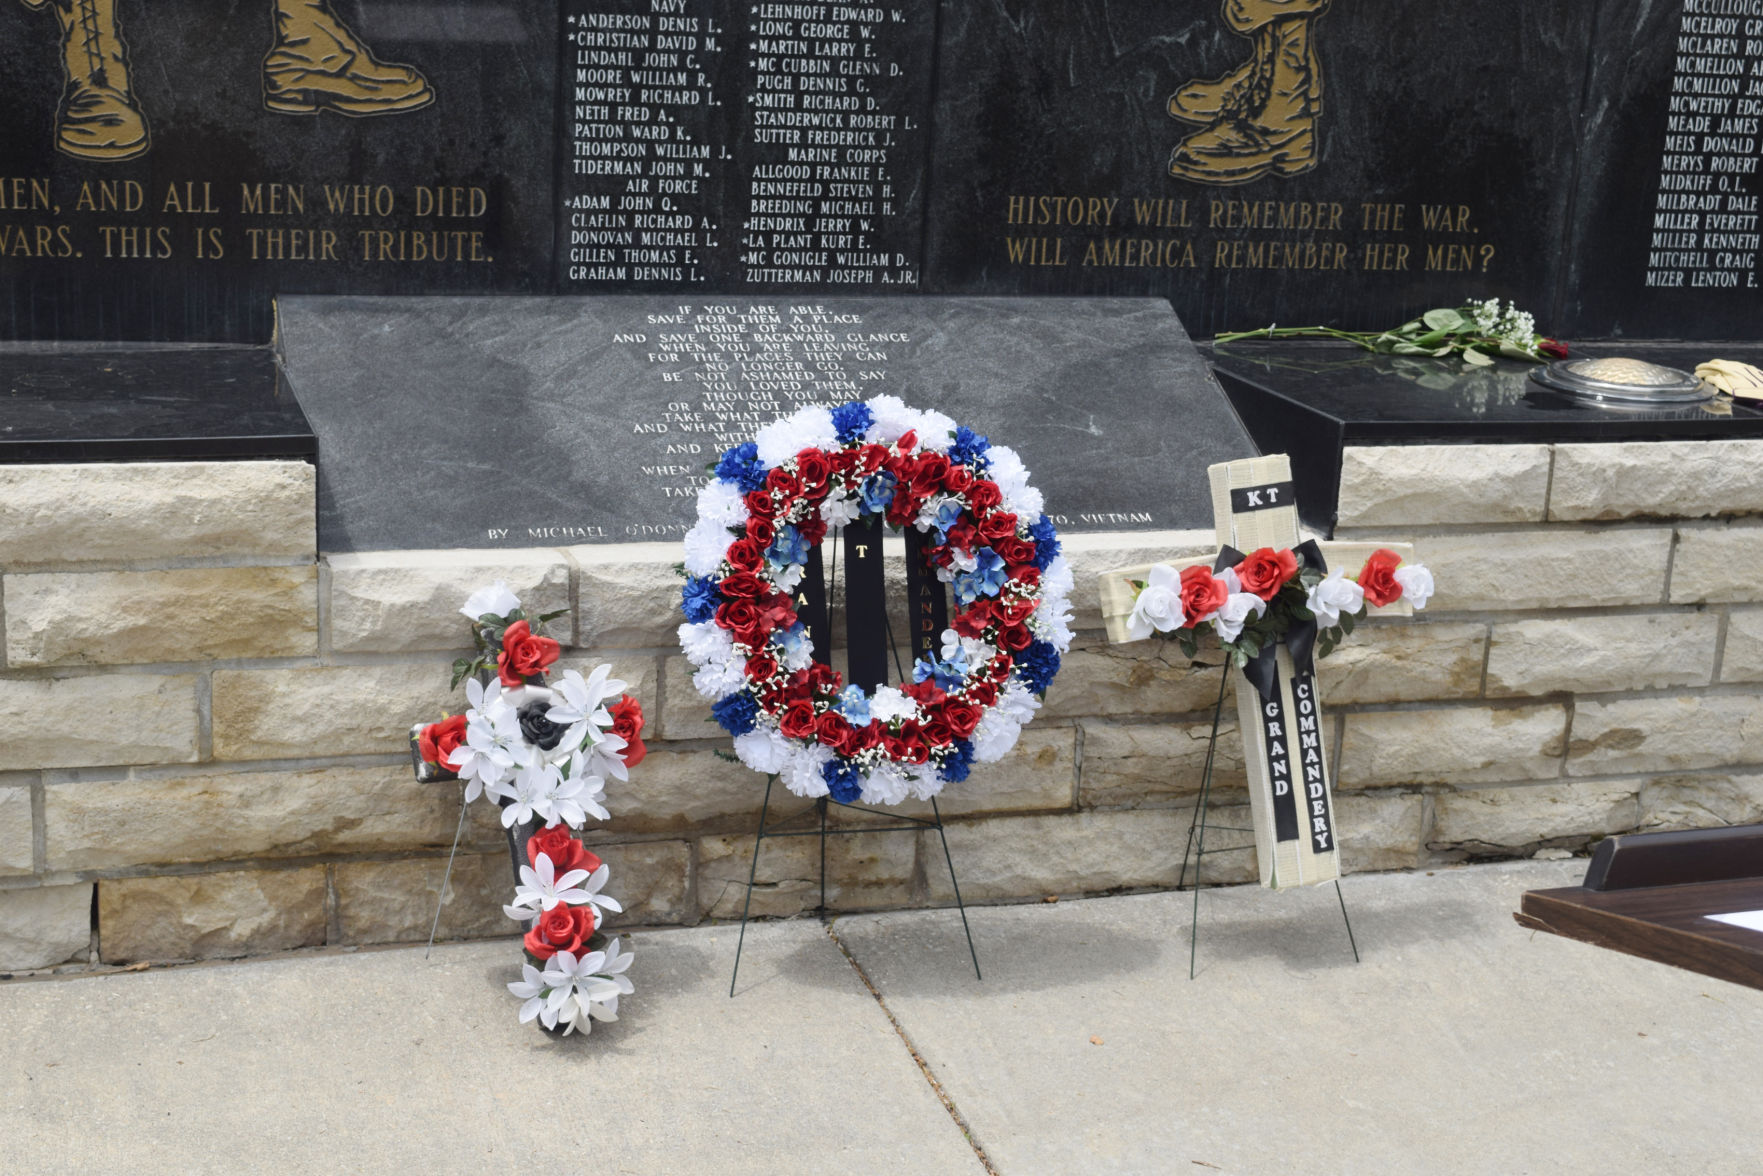 Wreath-laying ceremony honors those who served